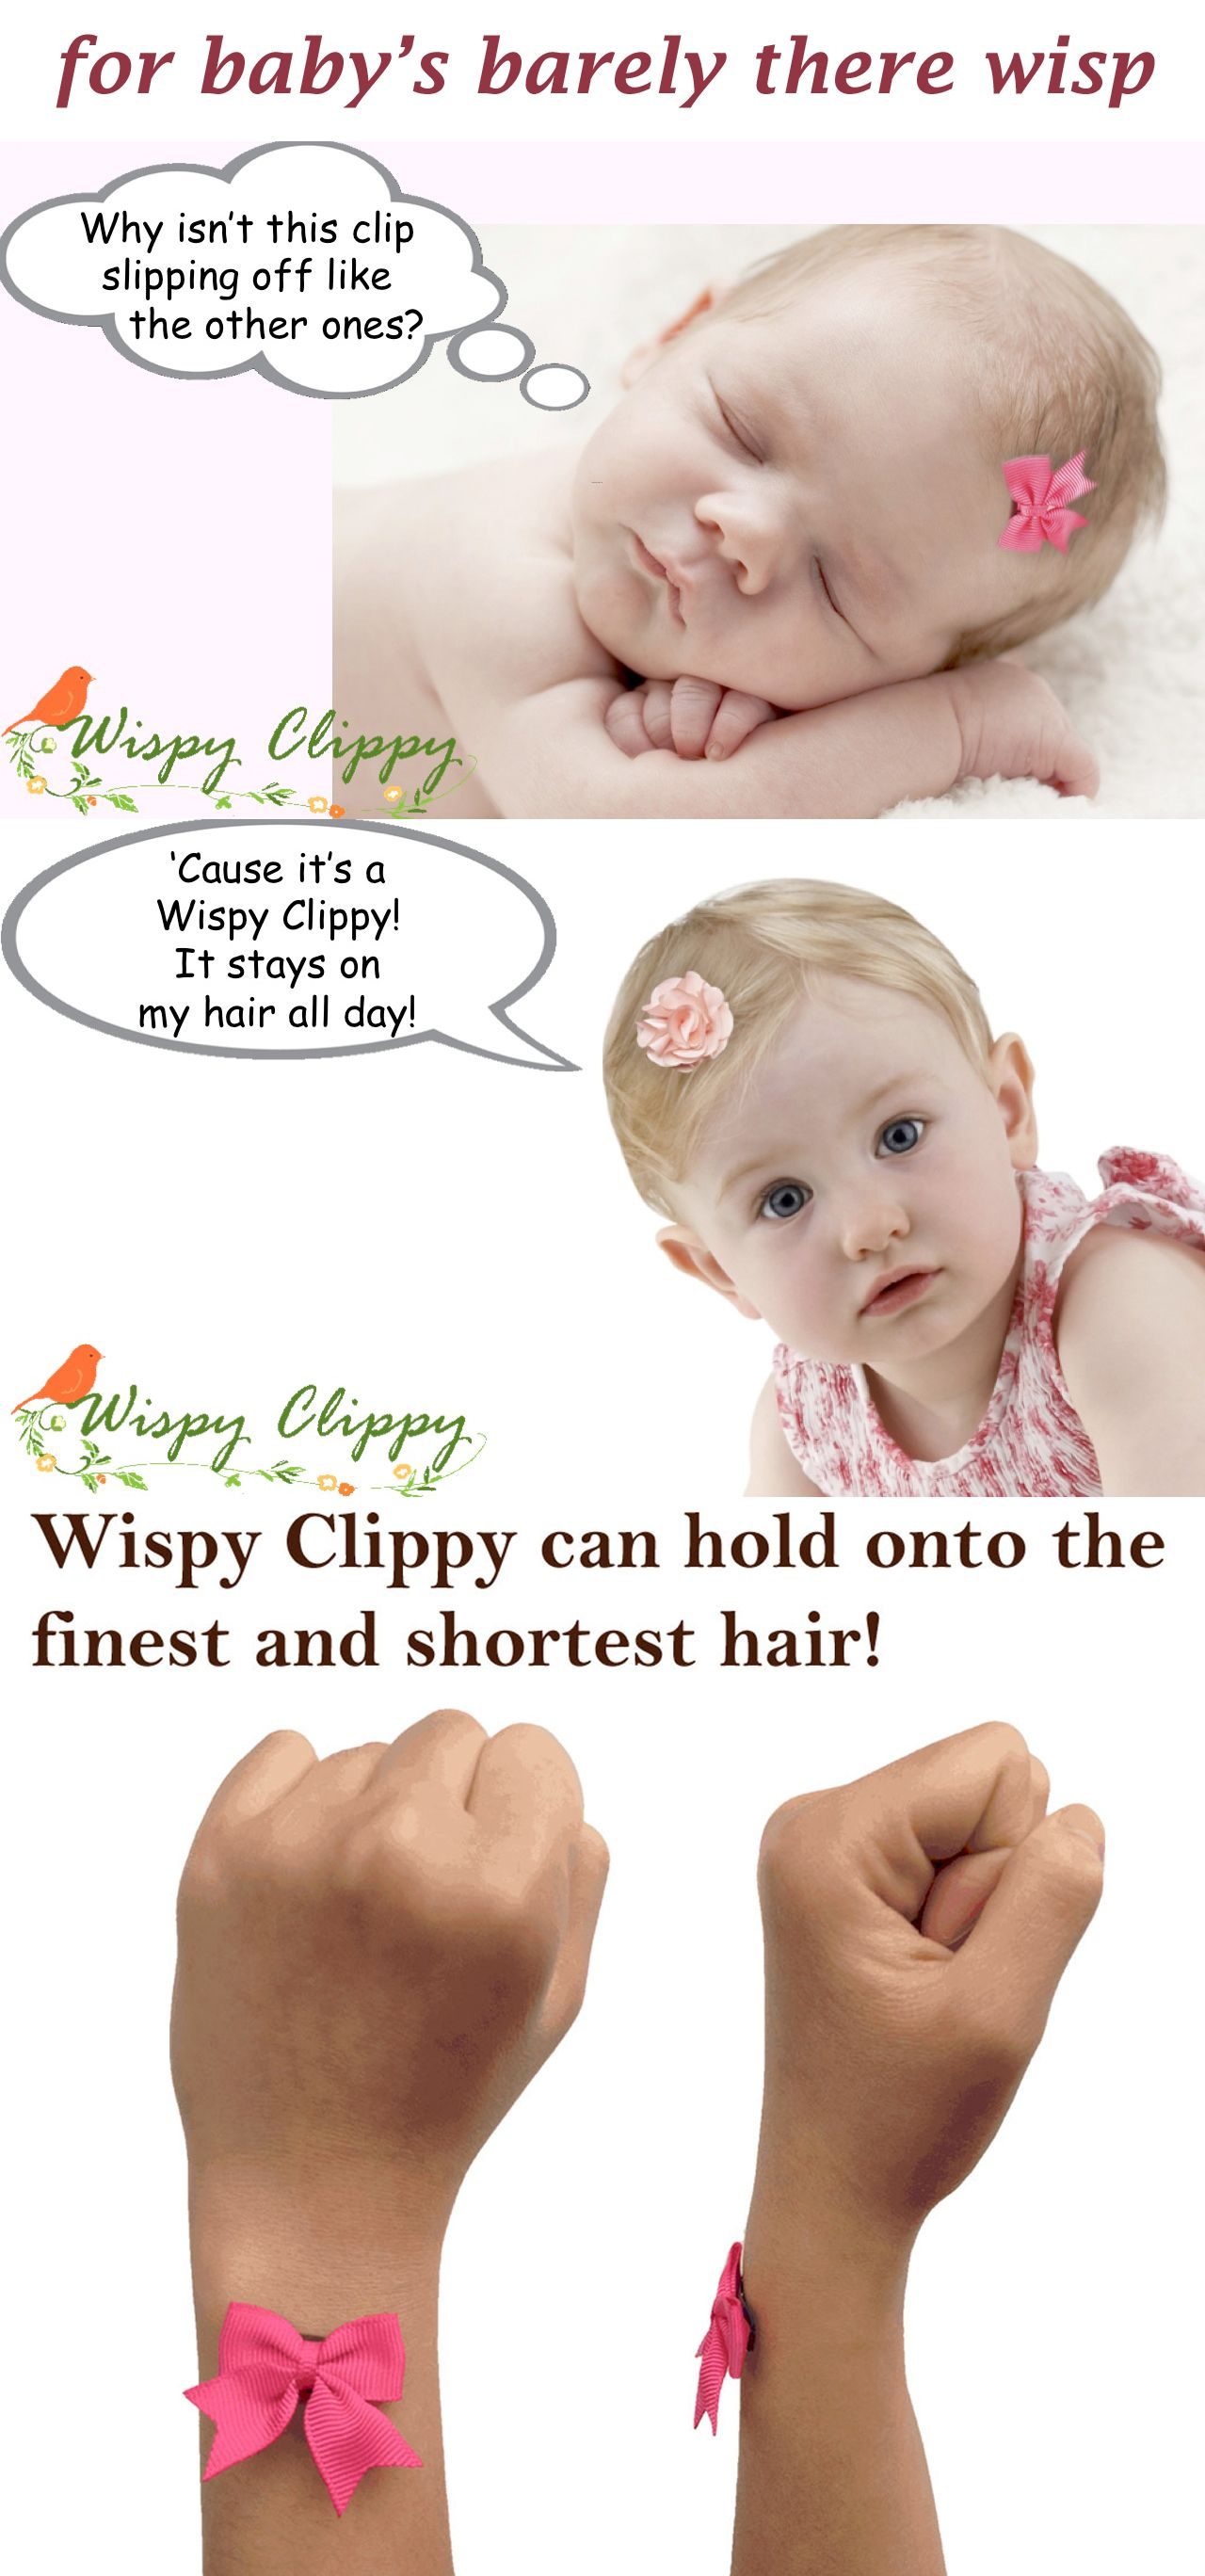 No hair clip stays on your baby barely there wispy hair  No problem! Wispy  Clippy will do the job! The best no-slip hair clip for fine hair! 865595c53f1